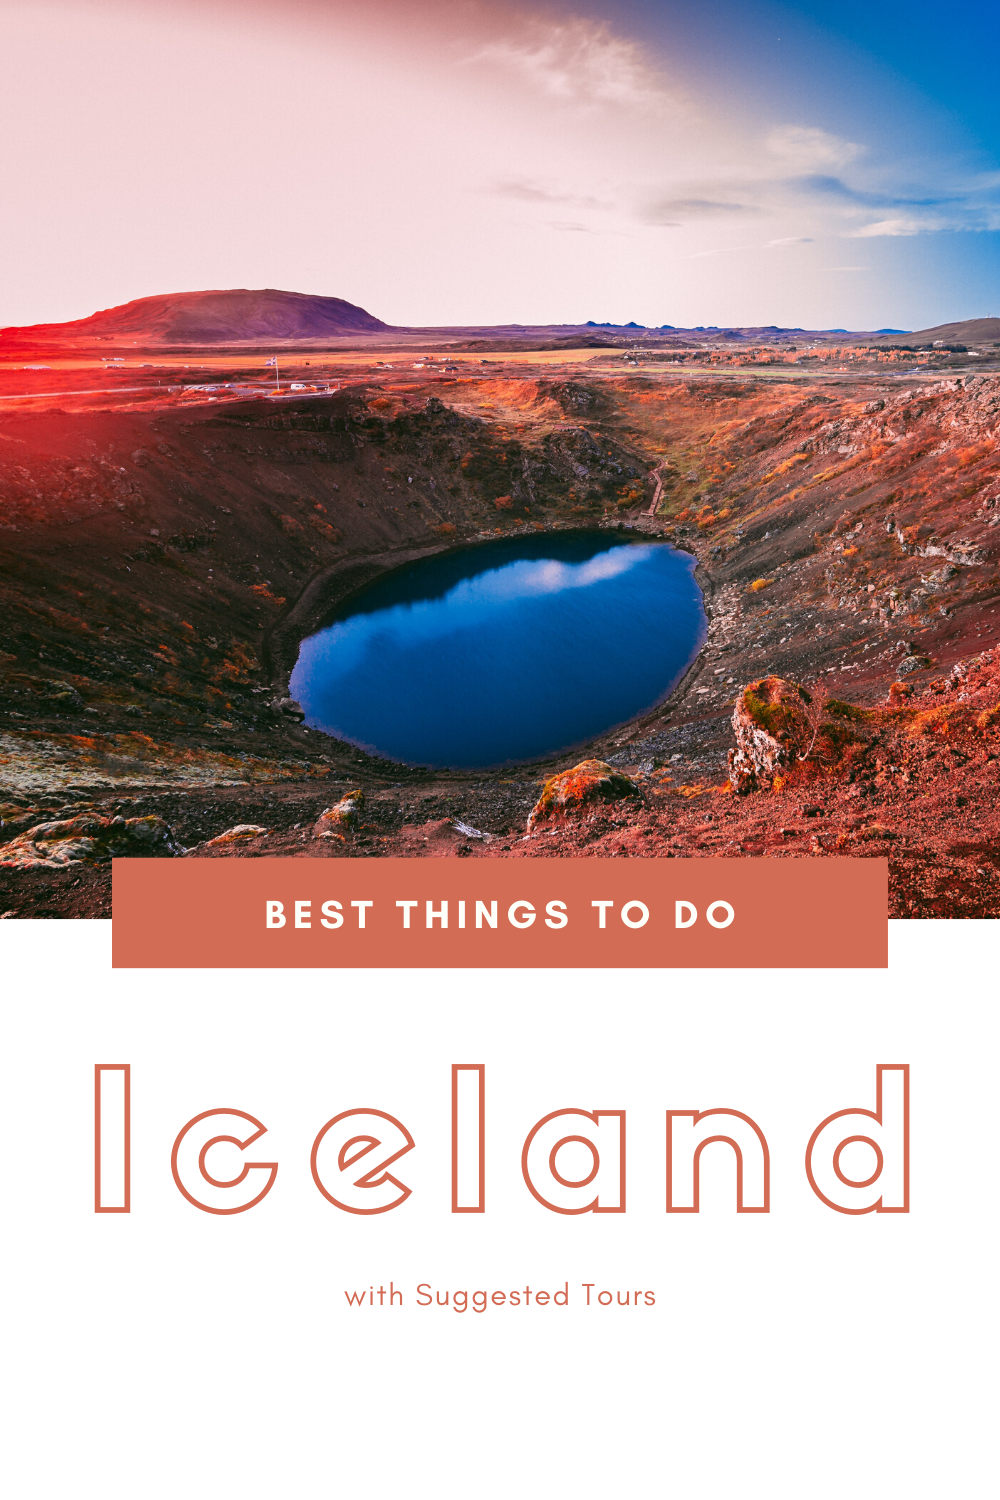 15 Best Things to do in Iceland